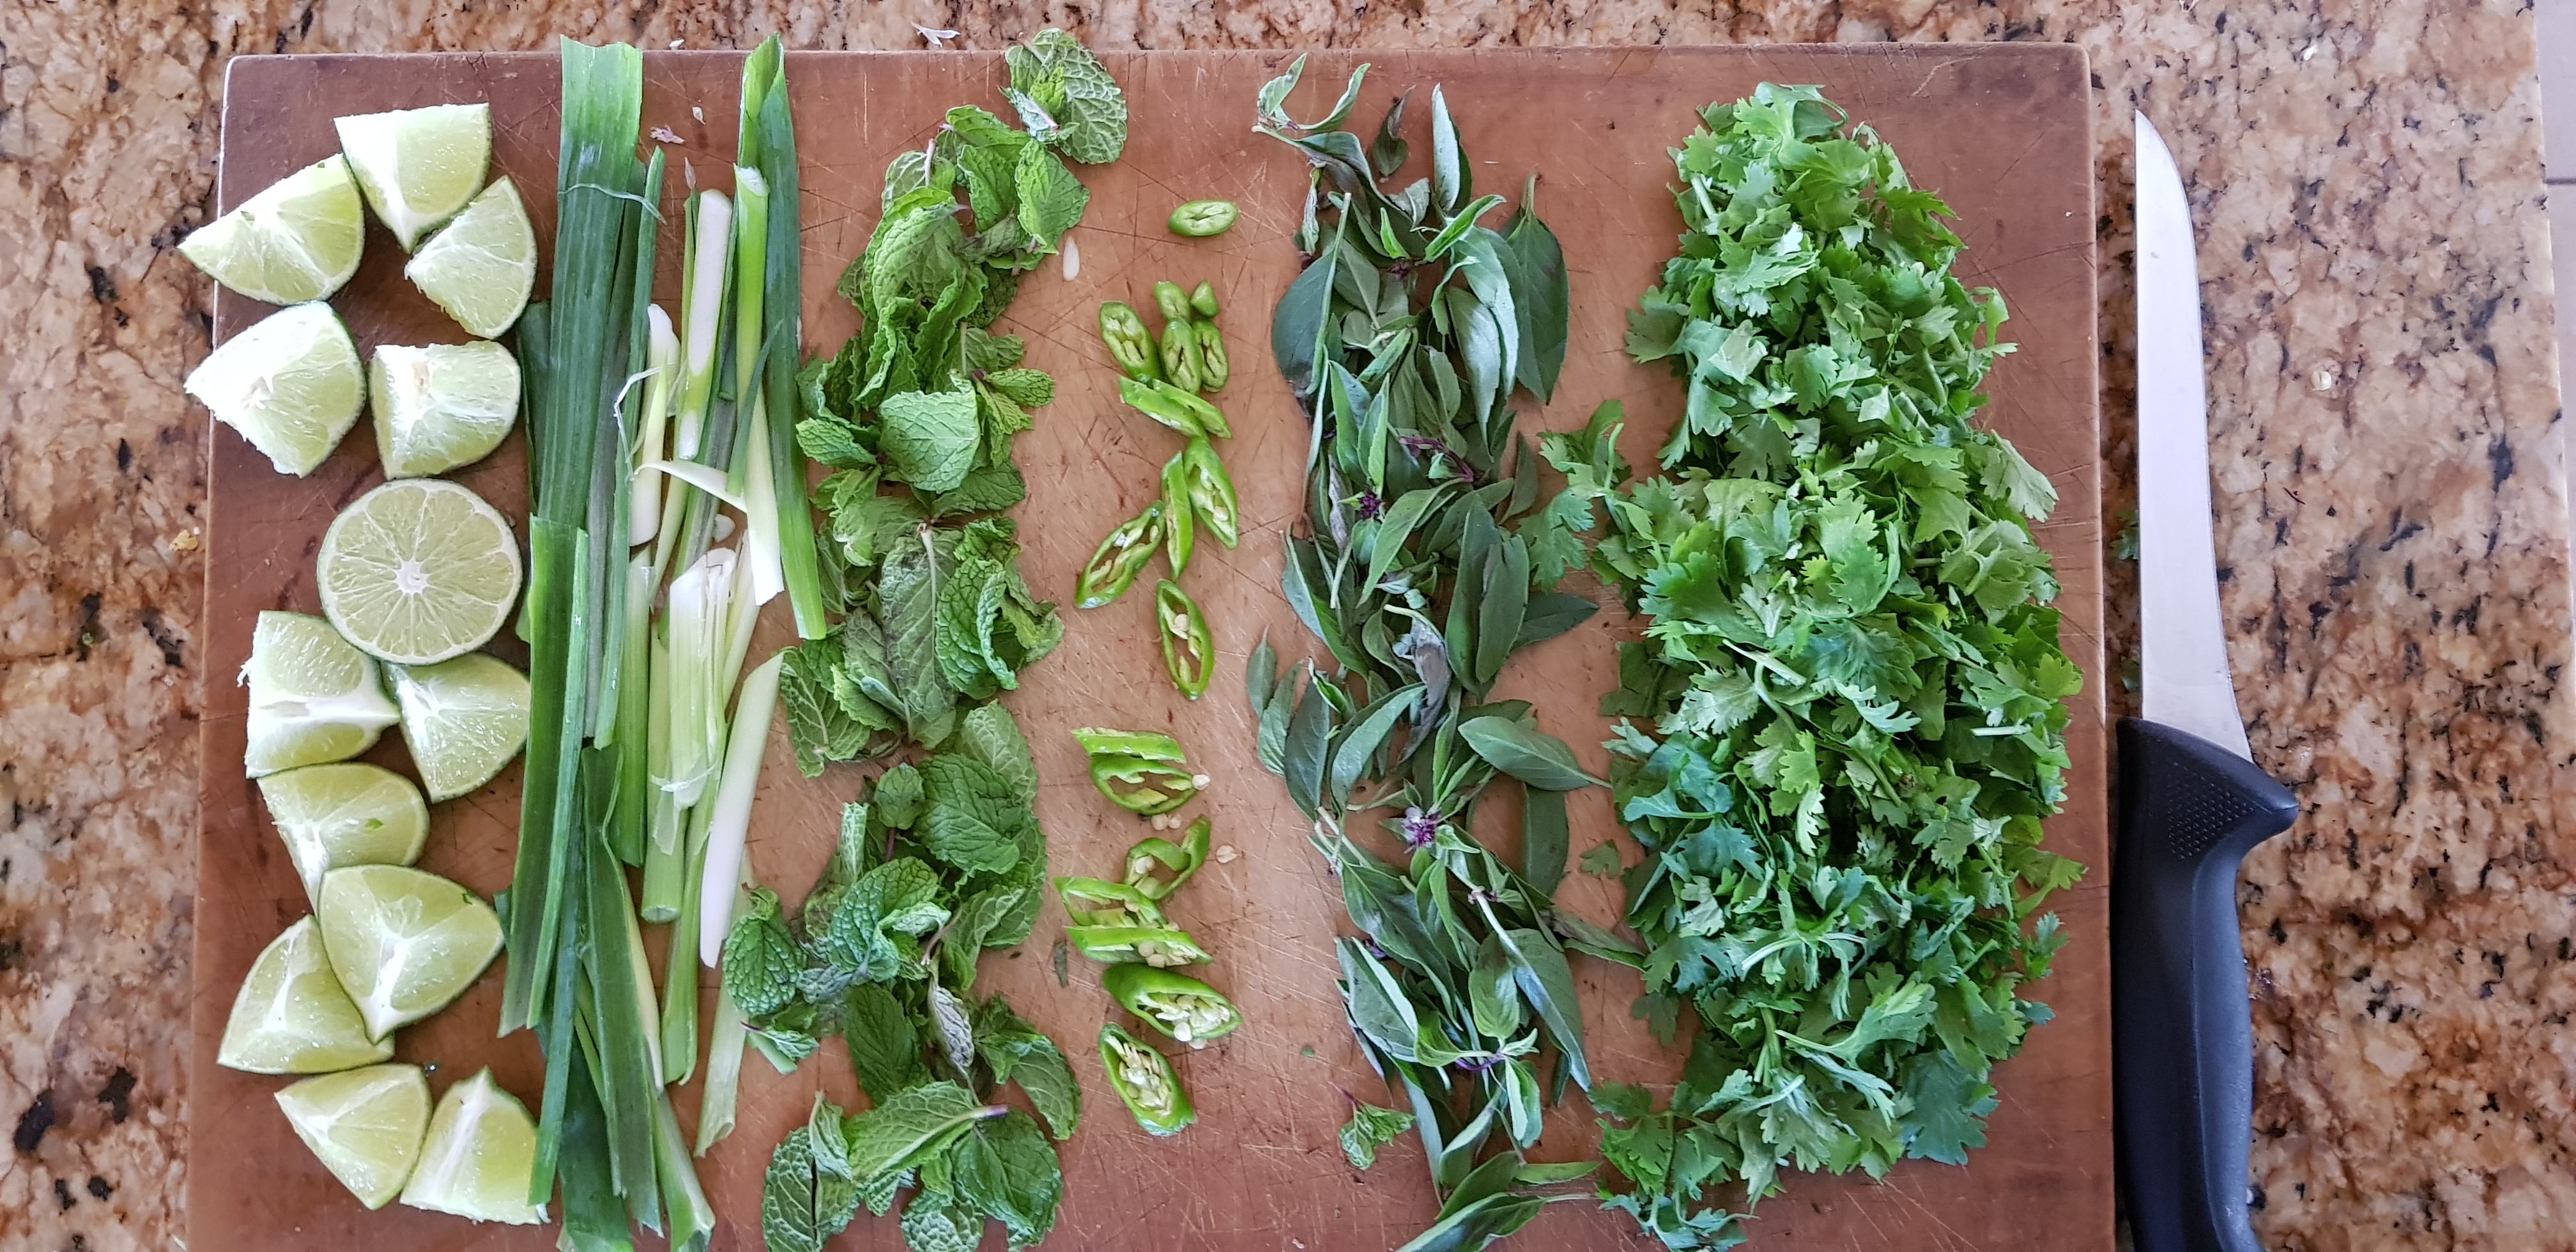 greens-on-cutting-board